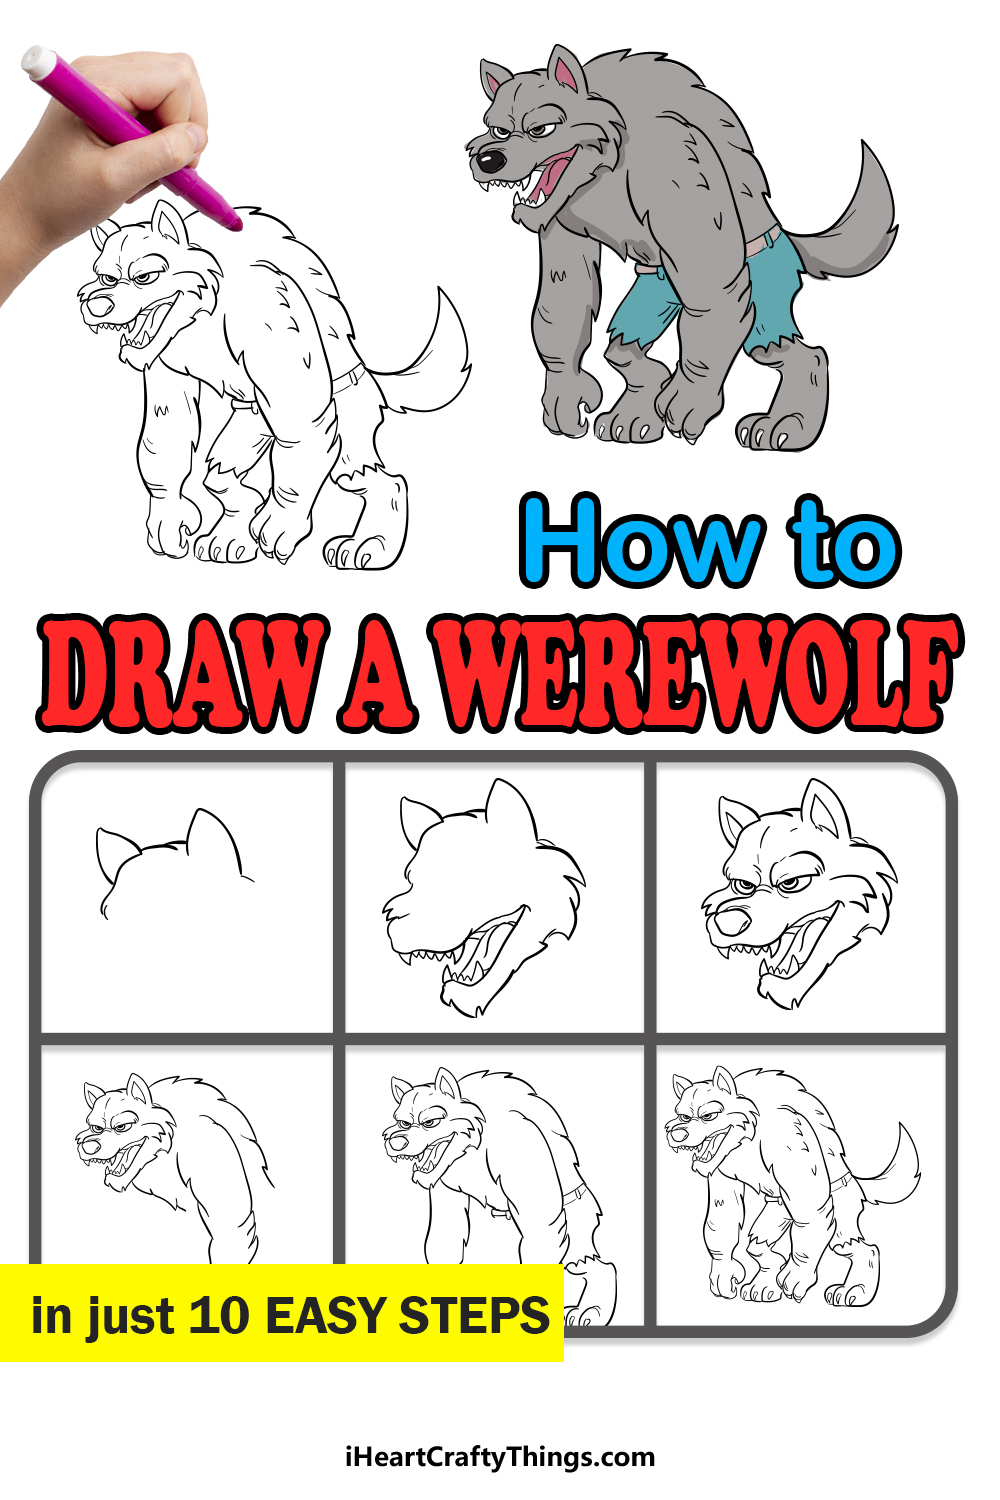 how to draw a werewolf in 10 easy steps